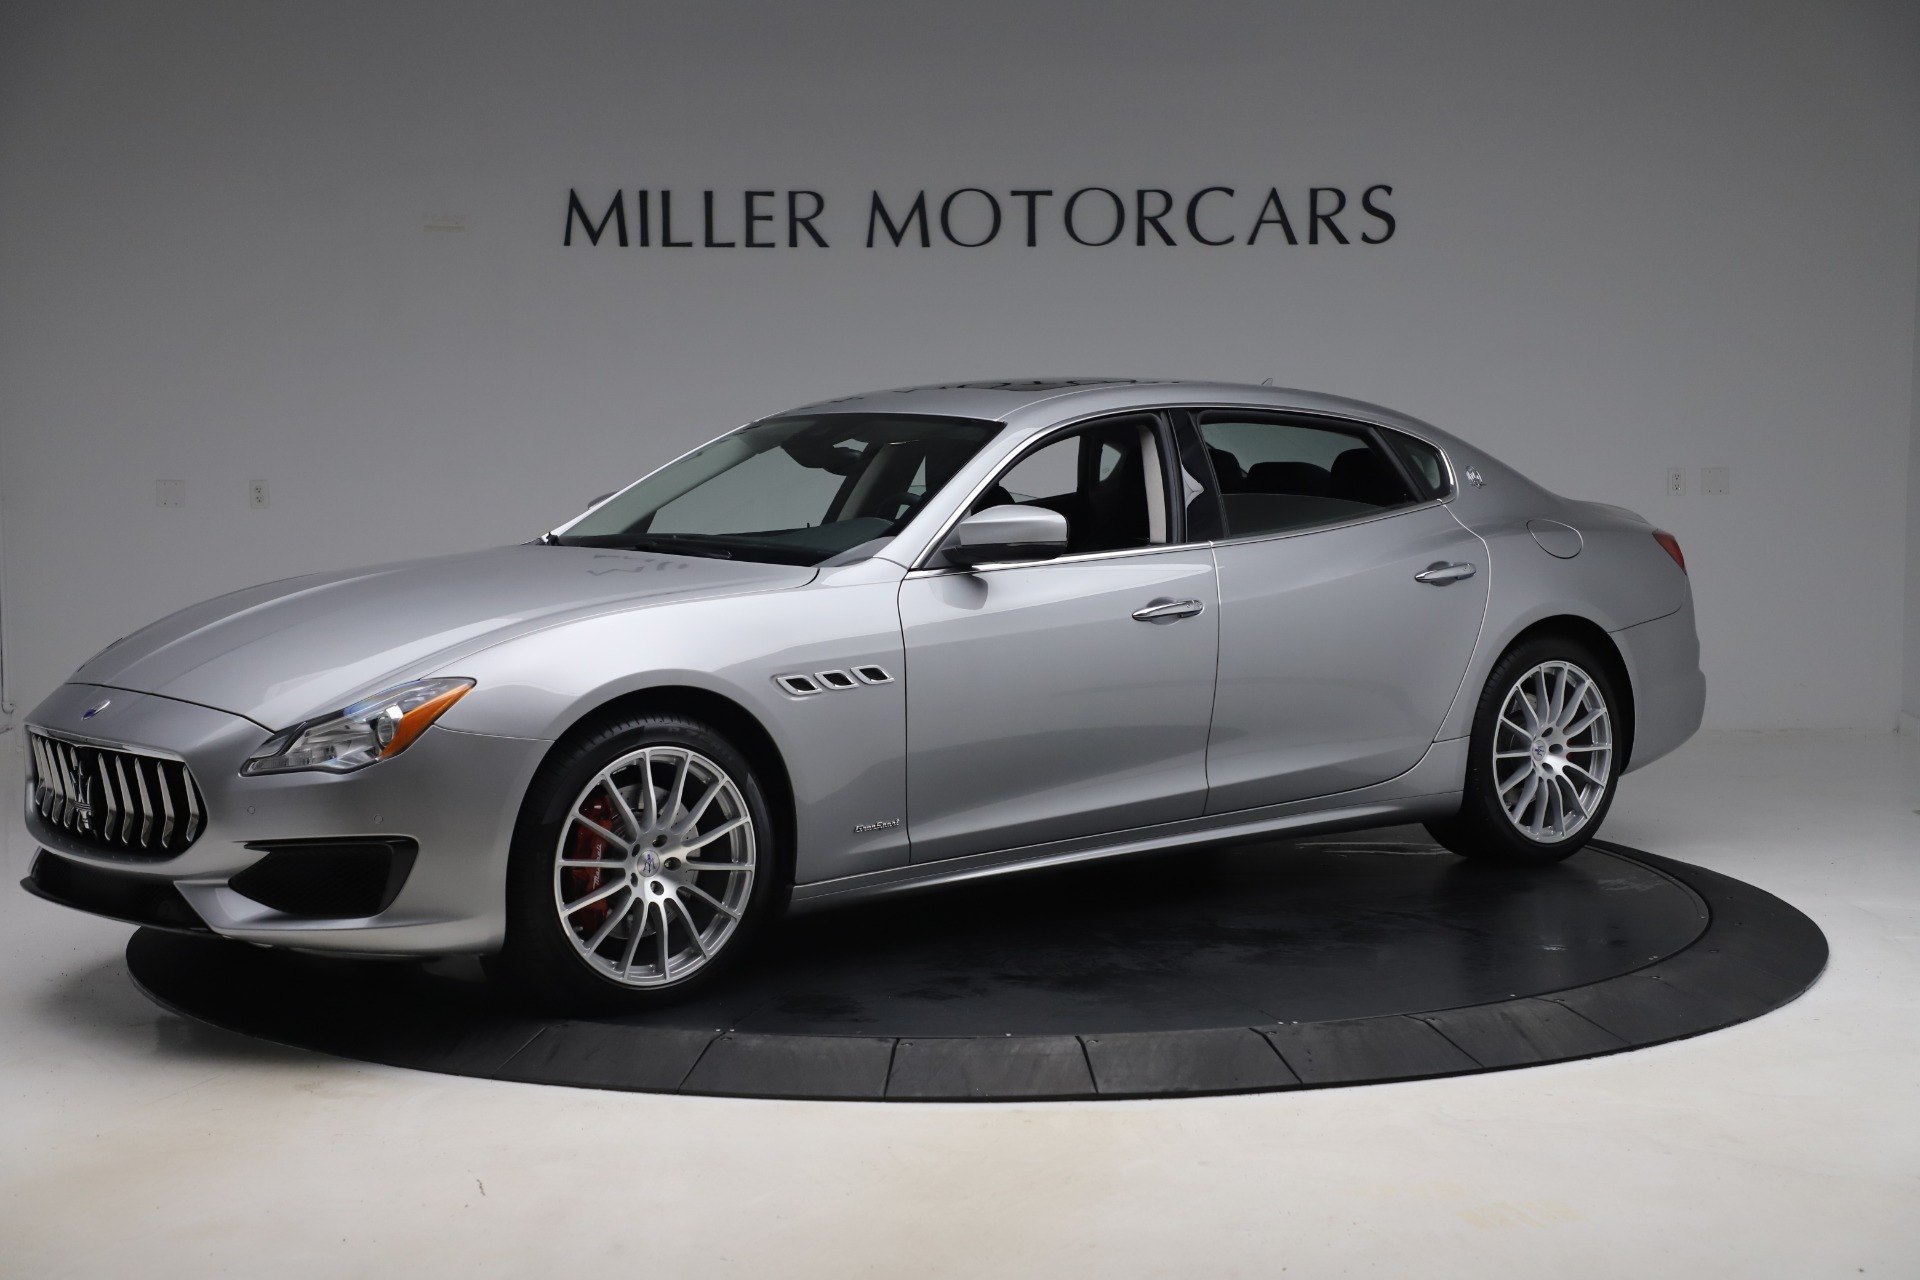 New 2017 Maserati Quattroporte S Q4 GranSport For Sale In Westport, CT 693_p2